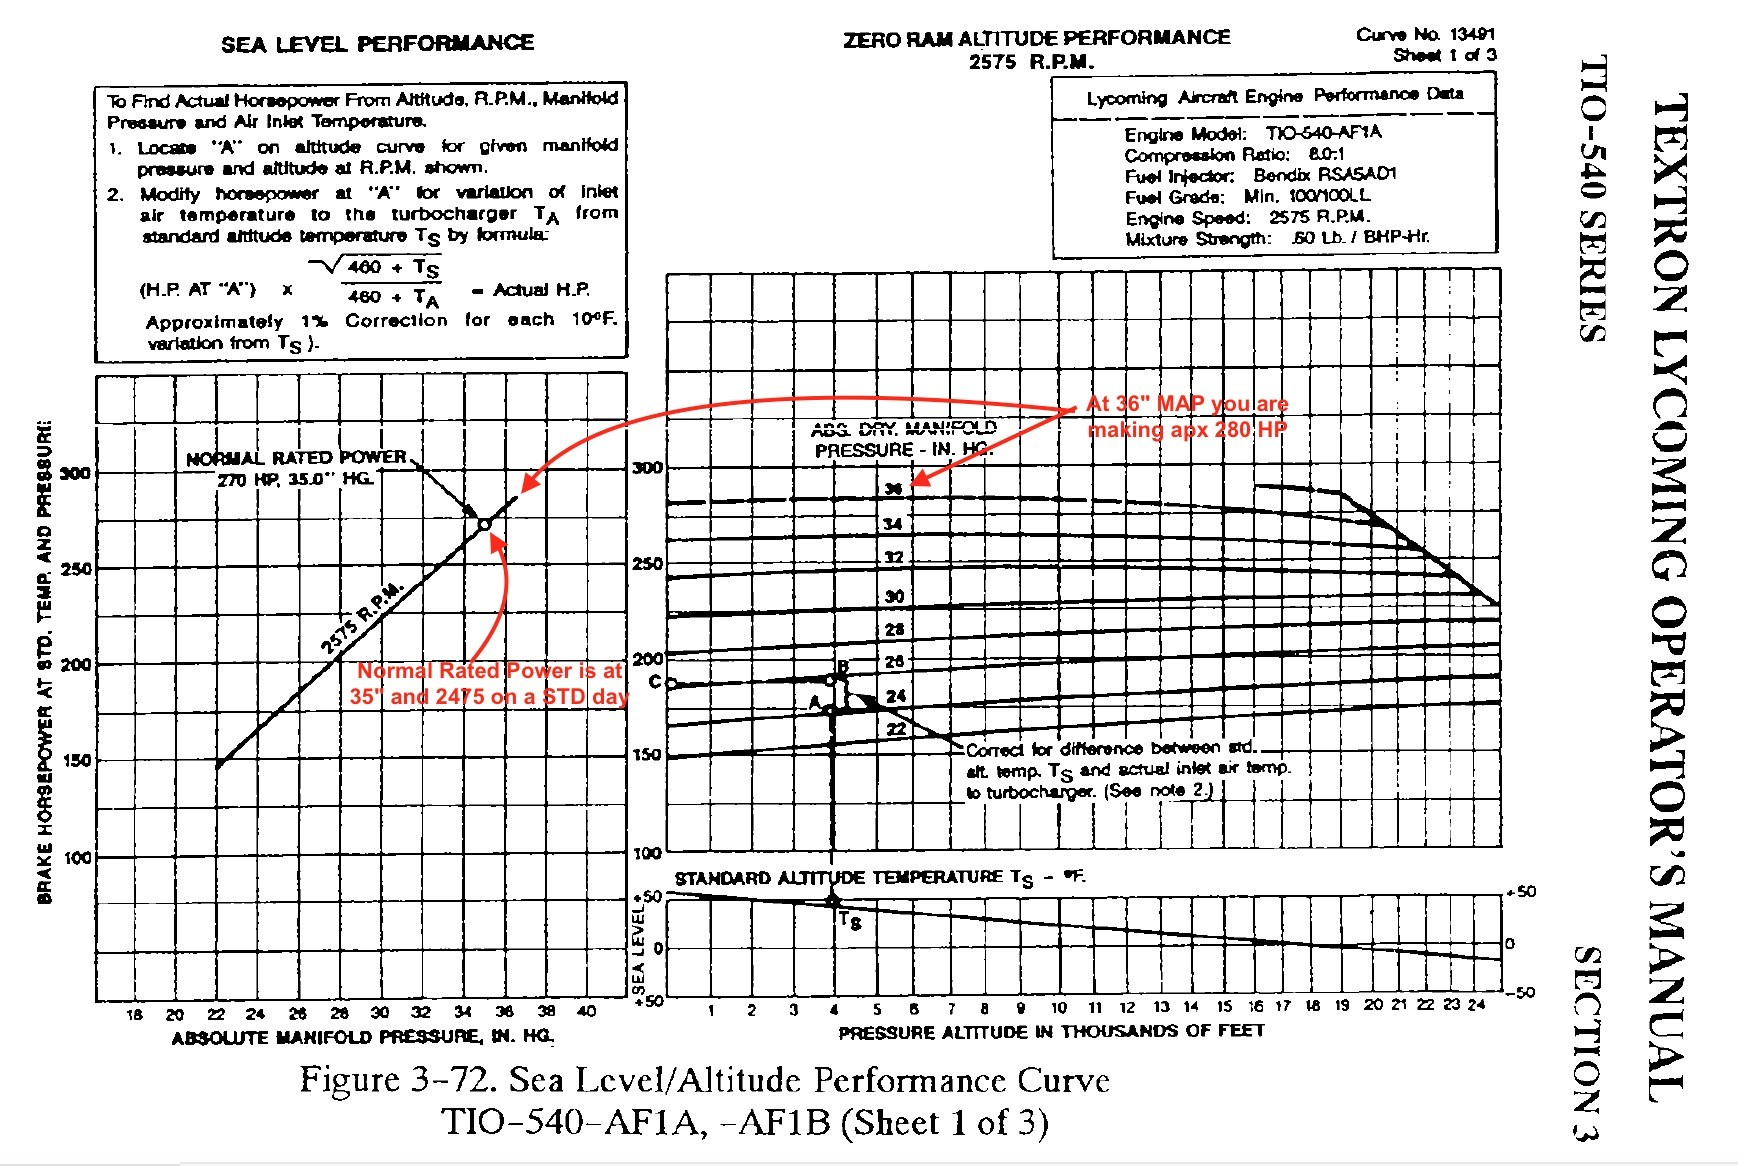 Lycoming Engine Diagram Tls Bravo Percentage Of Power Redux Updated 11 2016 Mooney Of Lycoming Engine Diagram